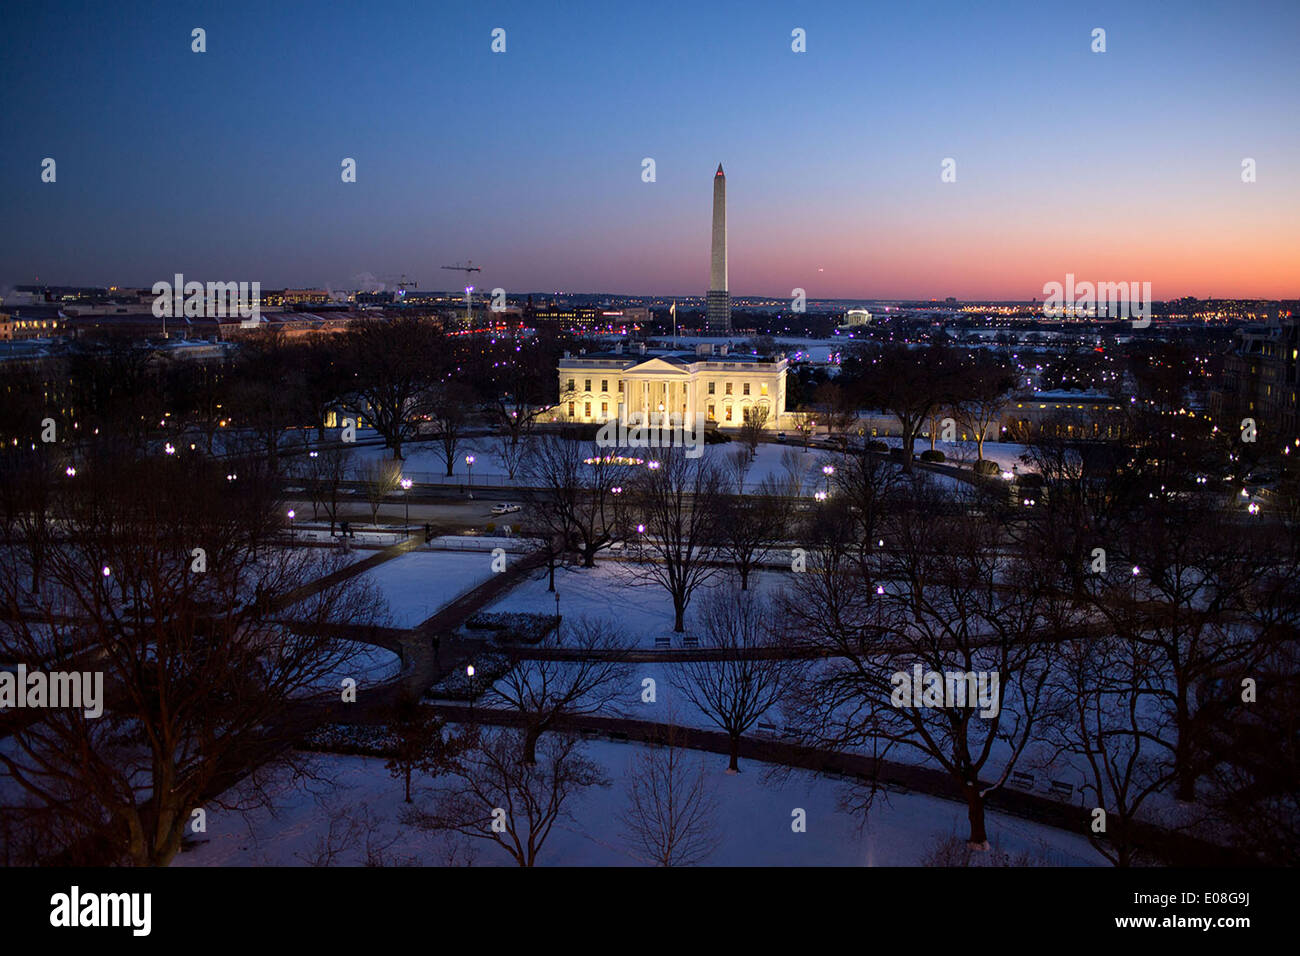 Aerial View Of The White House Illuminated At Twilight January 22